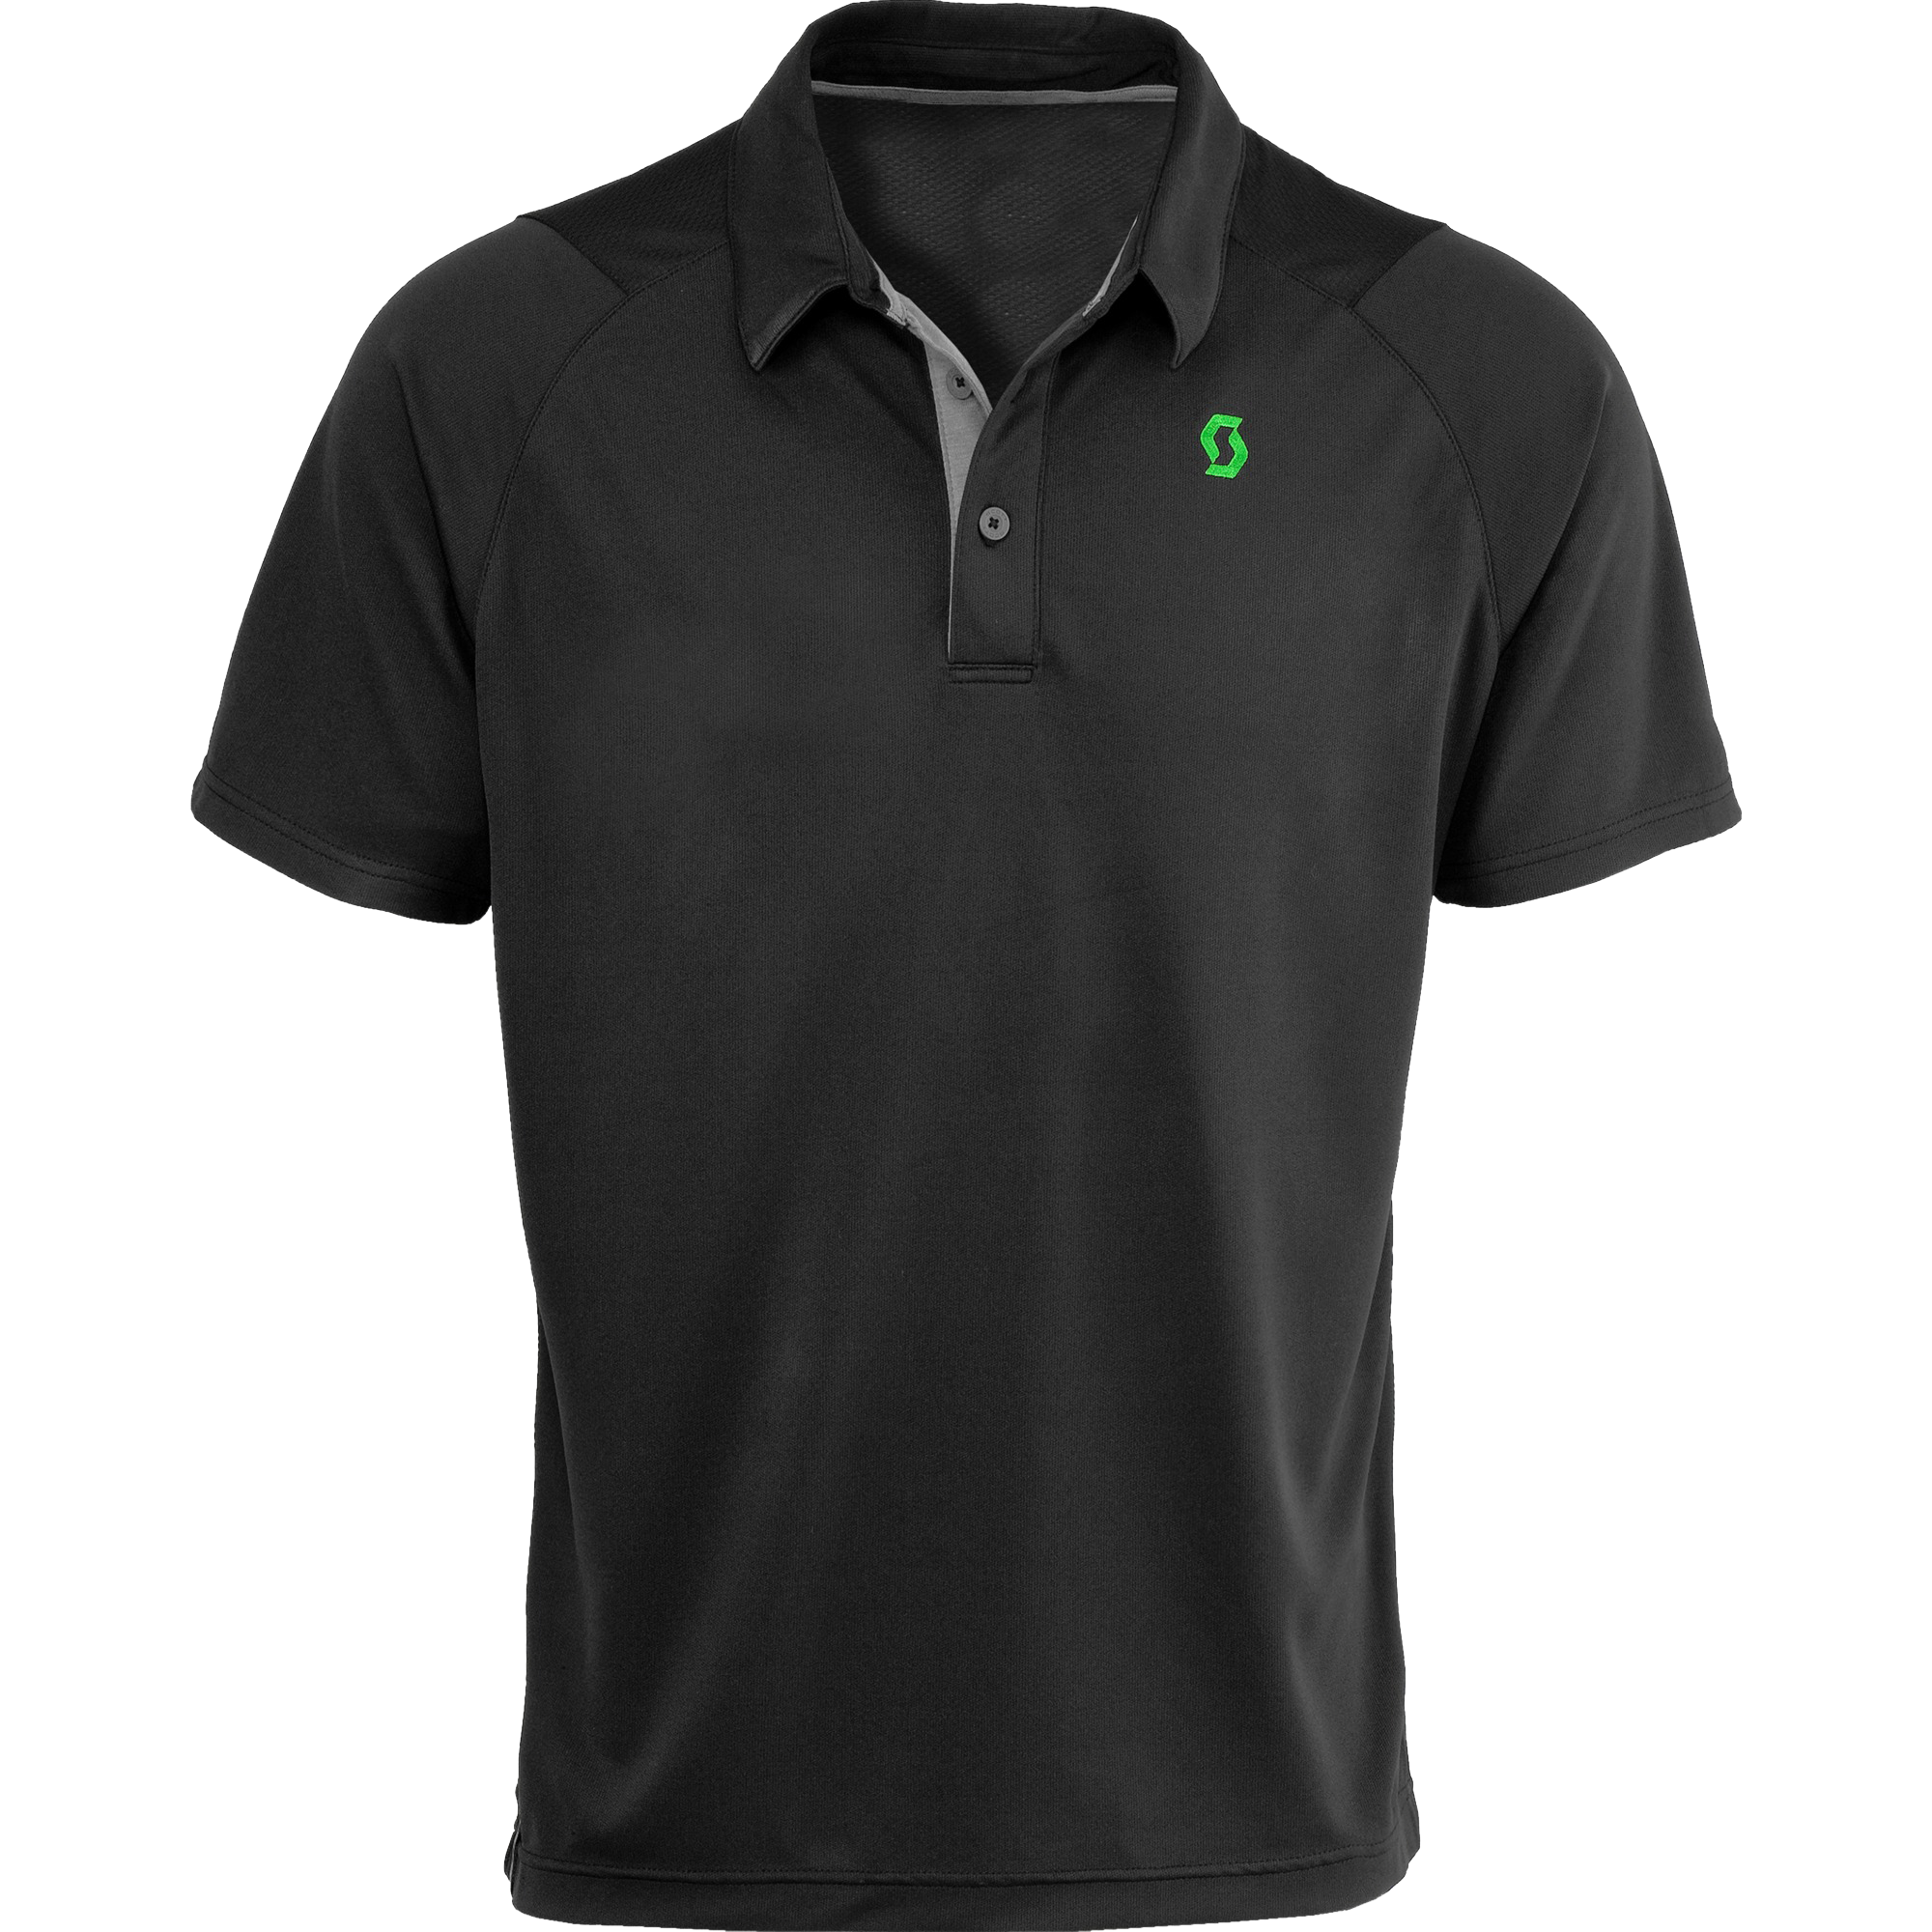 Polo Shirt PNG Transparent Images Group with 82+ items.